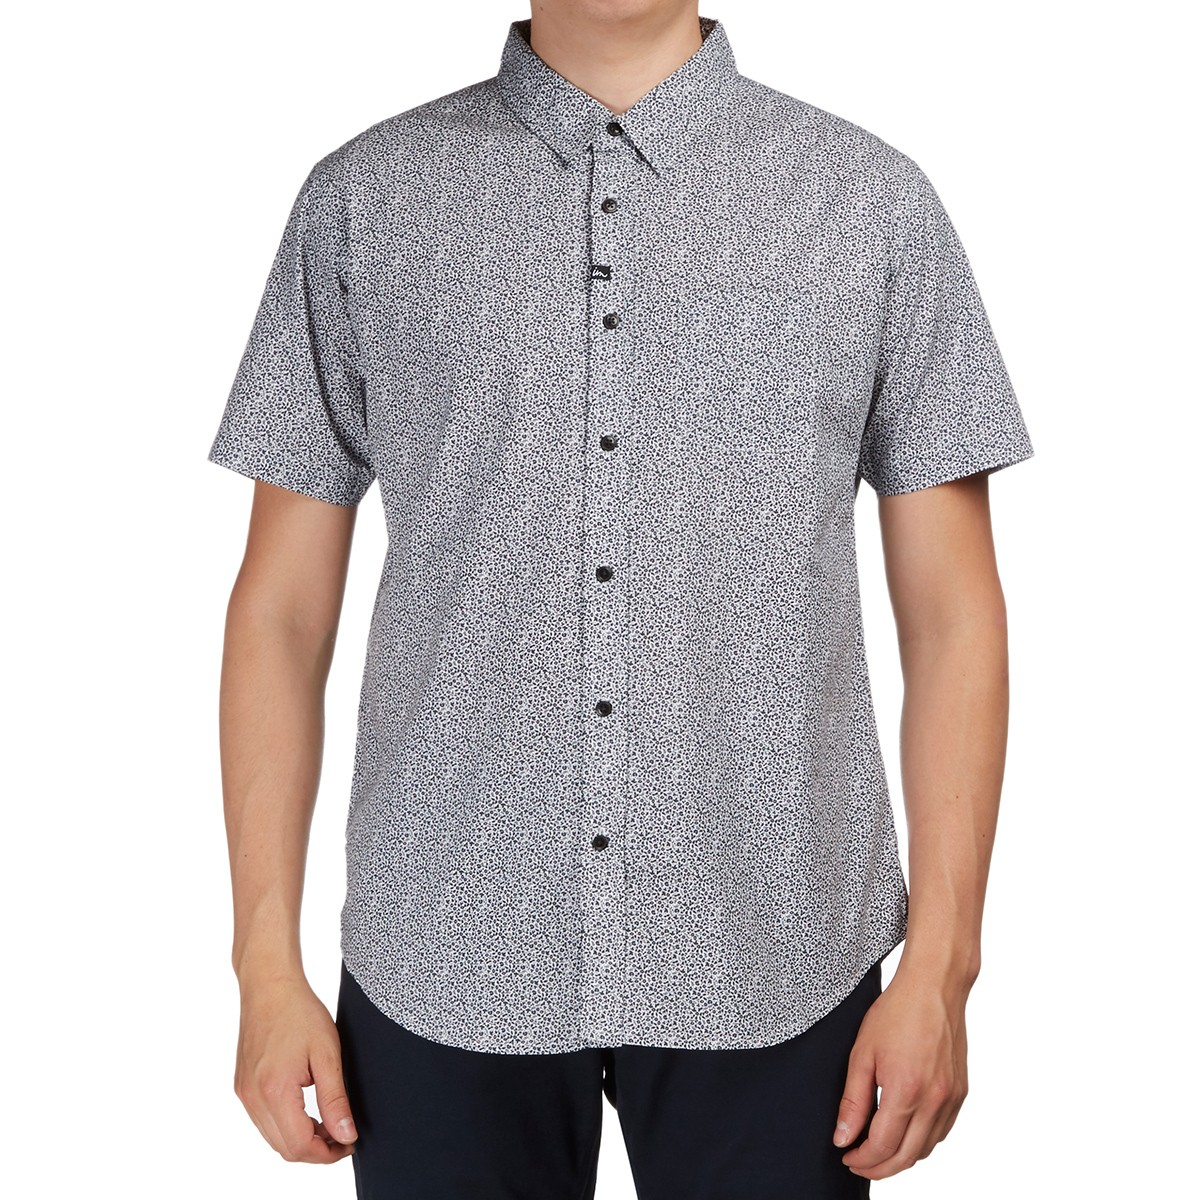 Imperial Motion Micro Shirt - Black